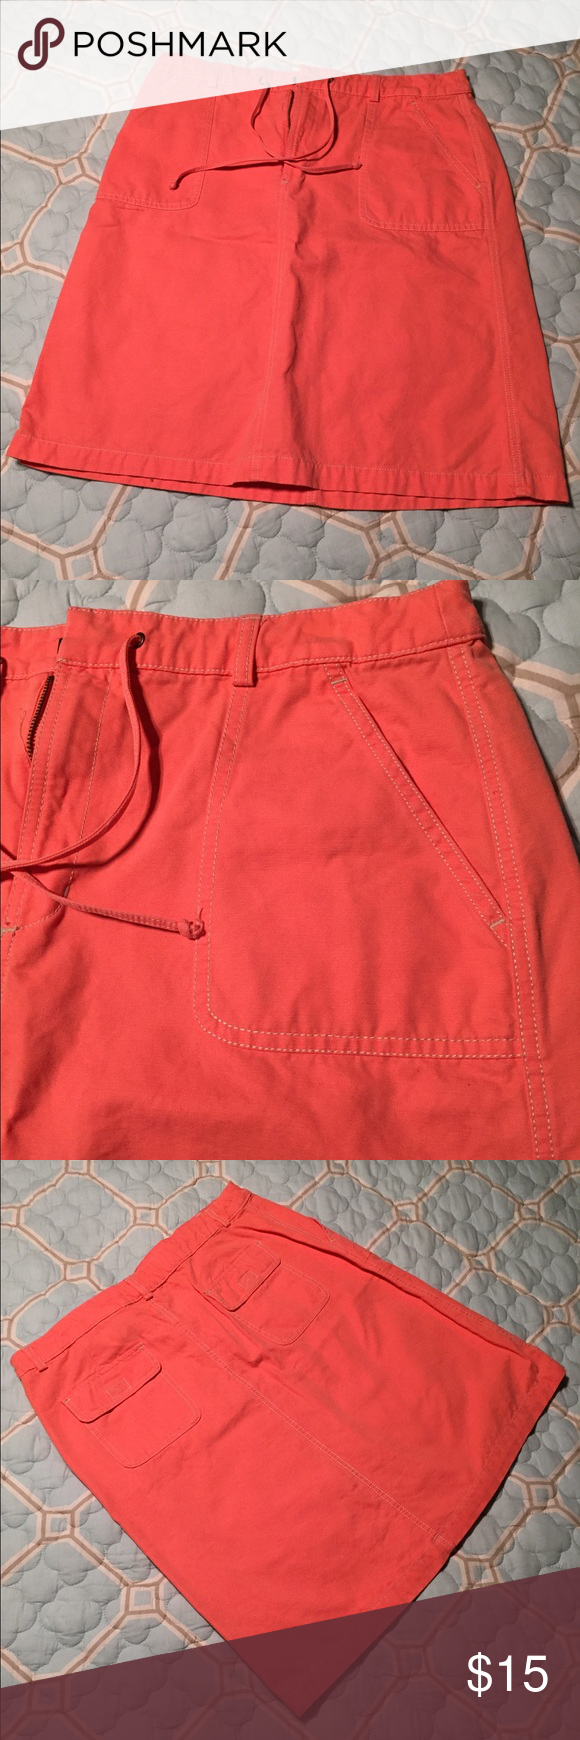 Coral Eddie Bauer Skirt Coral Eddie Bauer Skirt. Zipper and drawstring tie, along with side and back pockets. Eddie Bauer Skirts